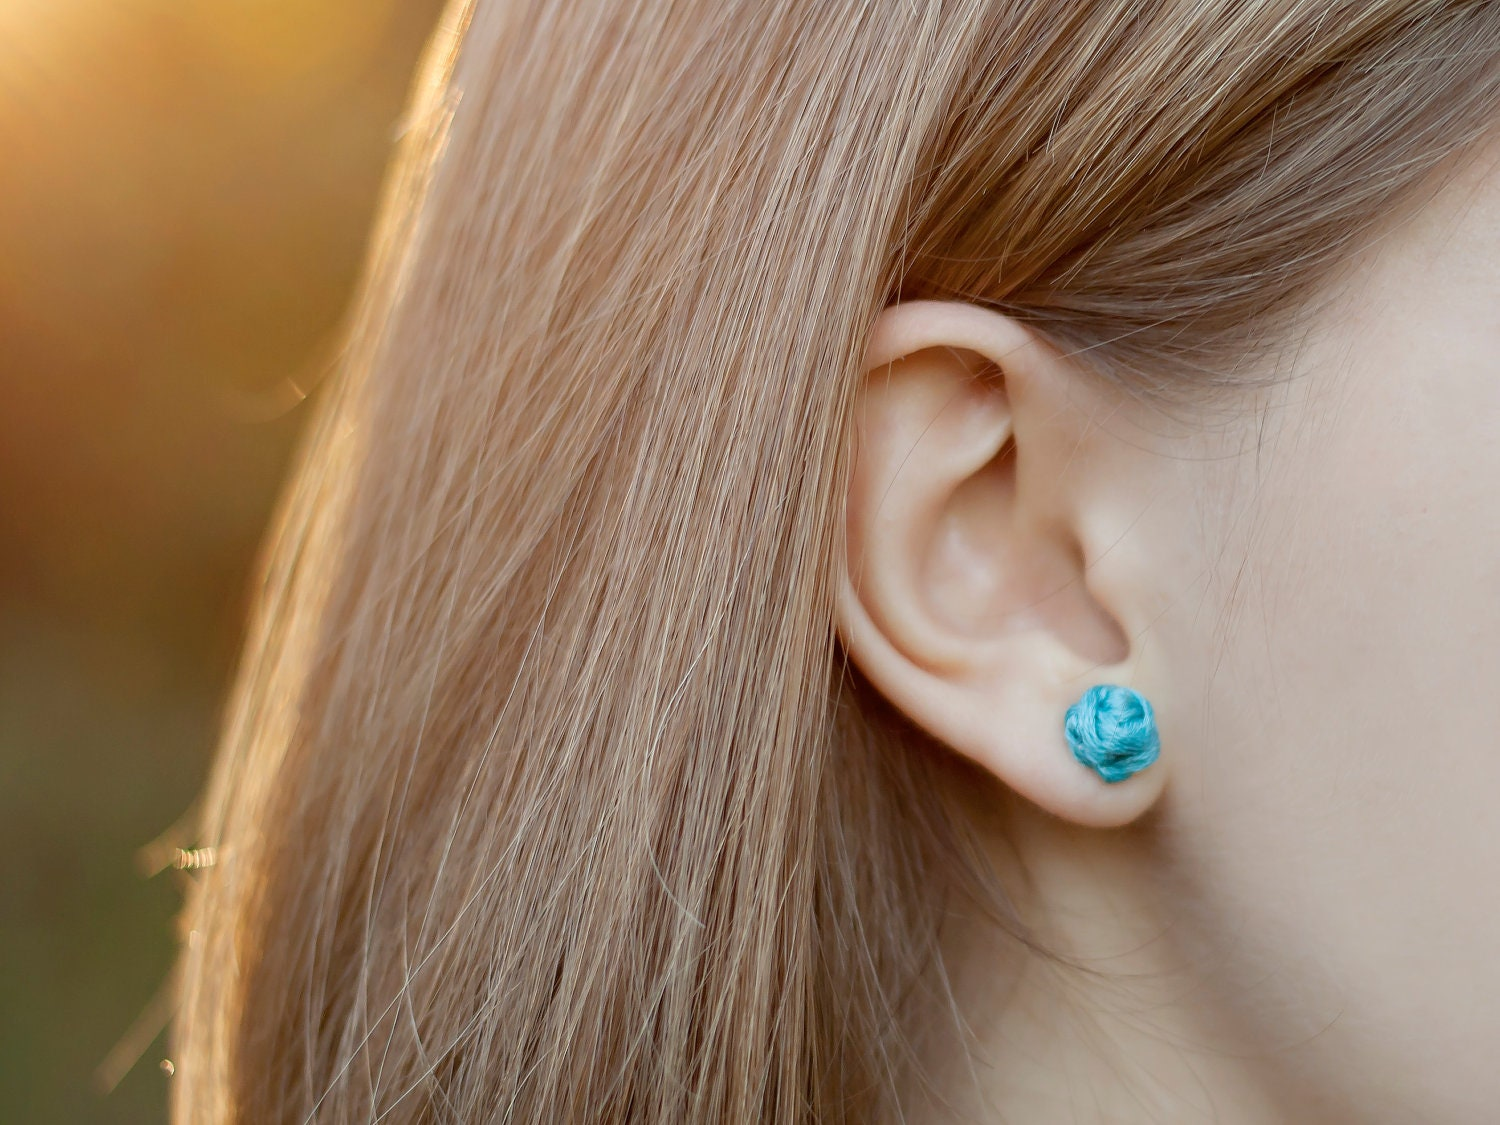 Rosebud Knotted Earrings in turquoise